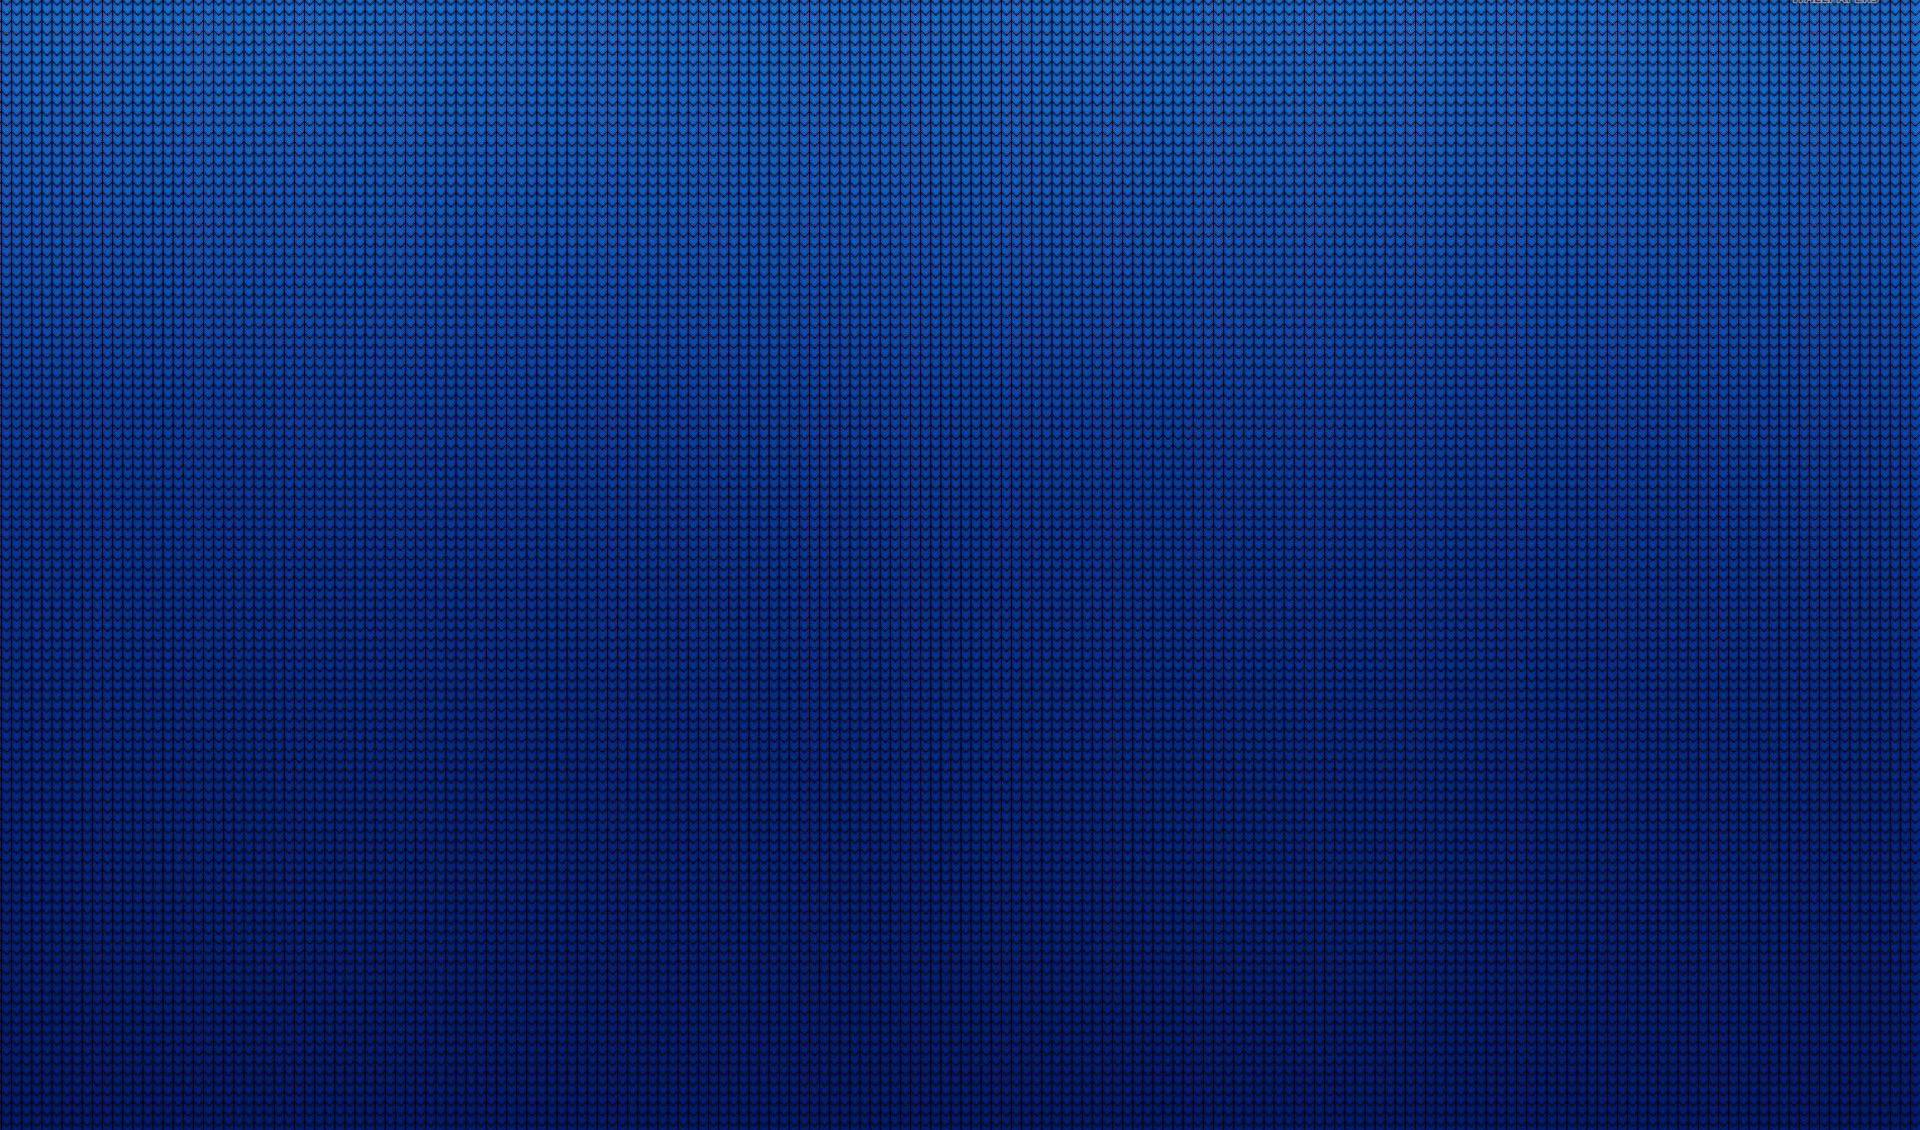 Blue pattern wallpapers HD quality